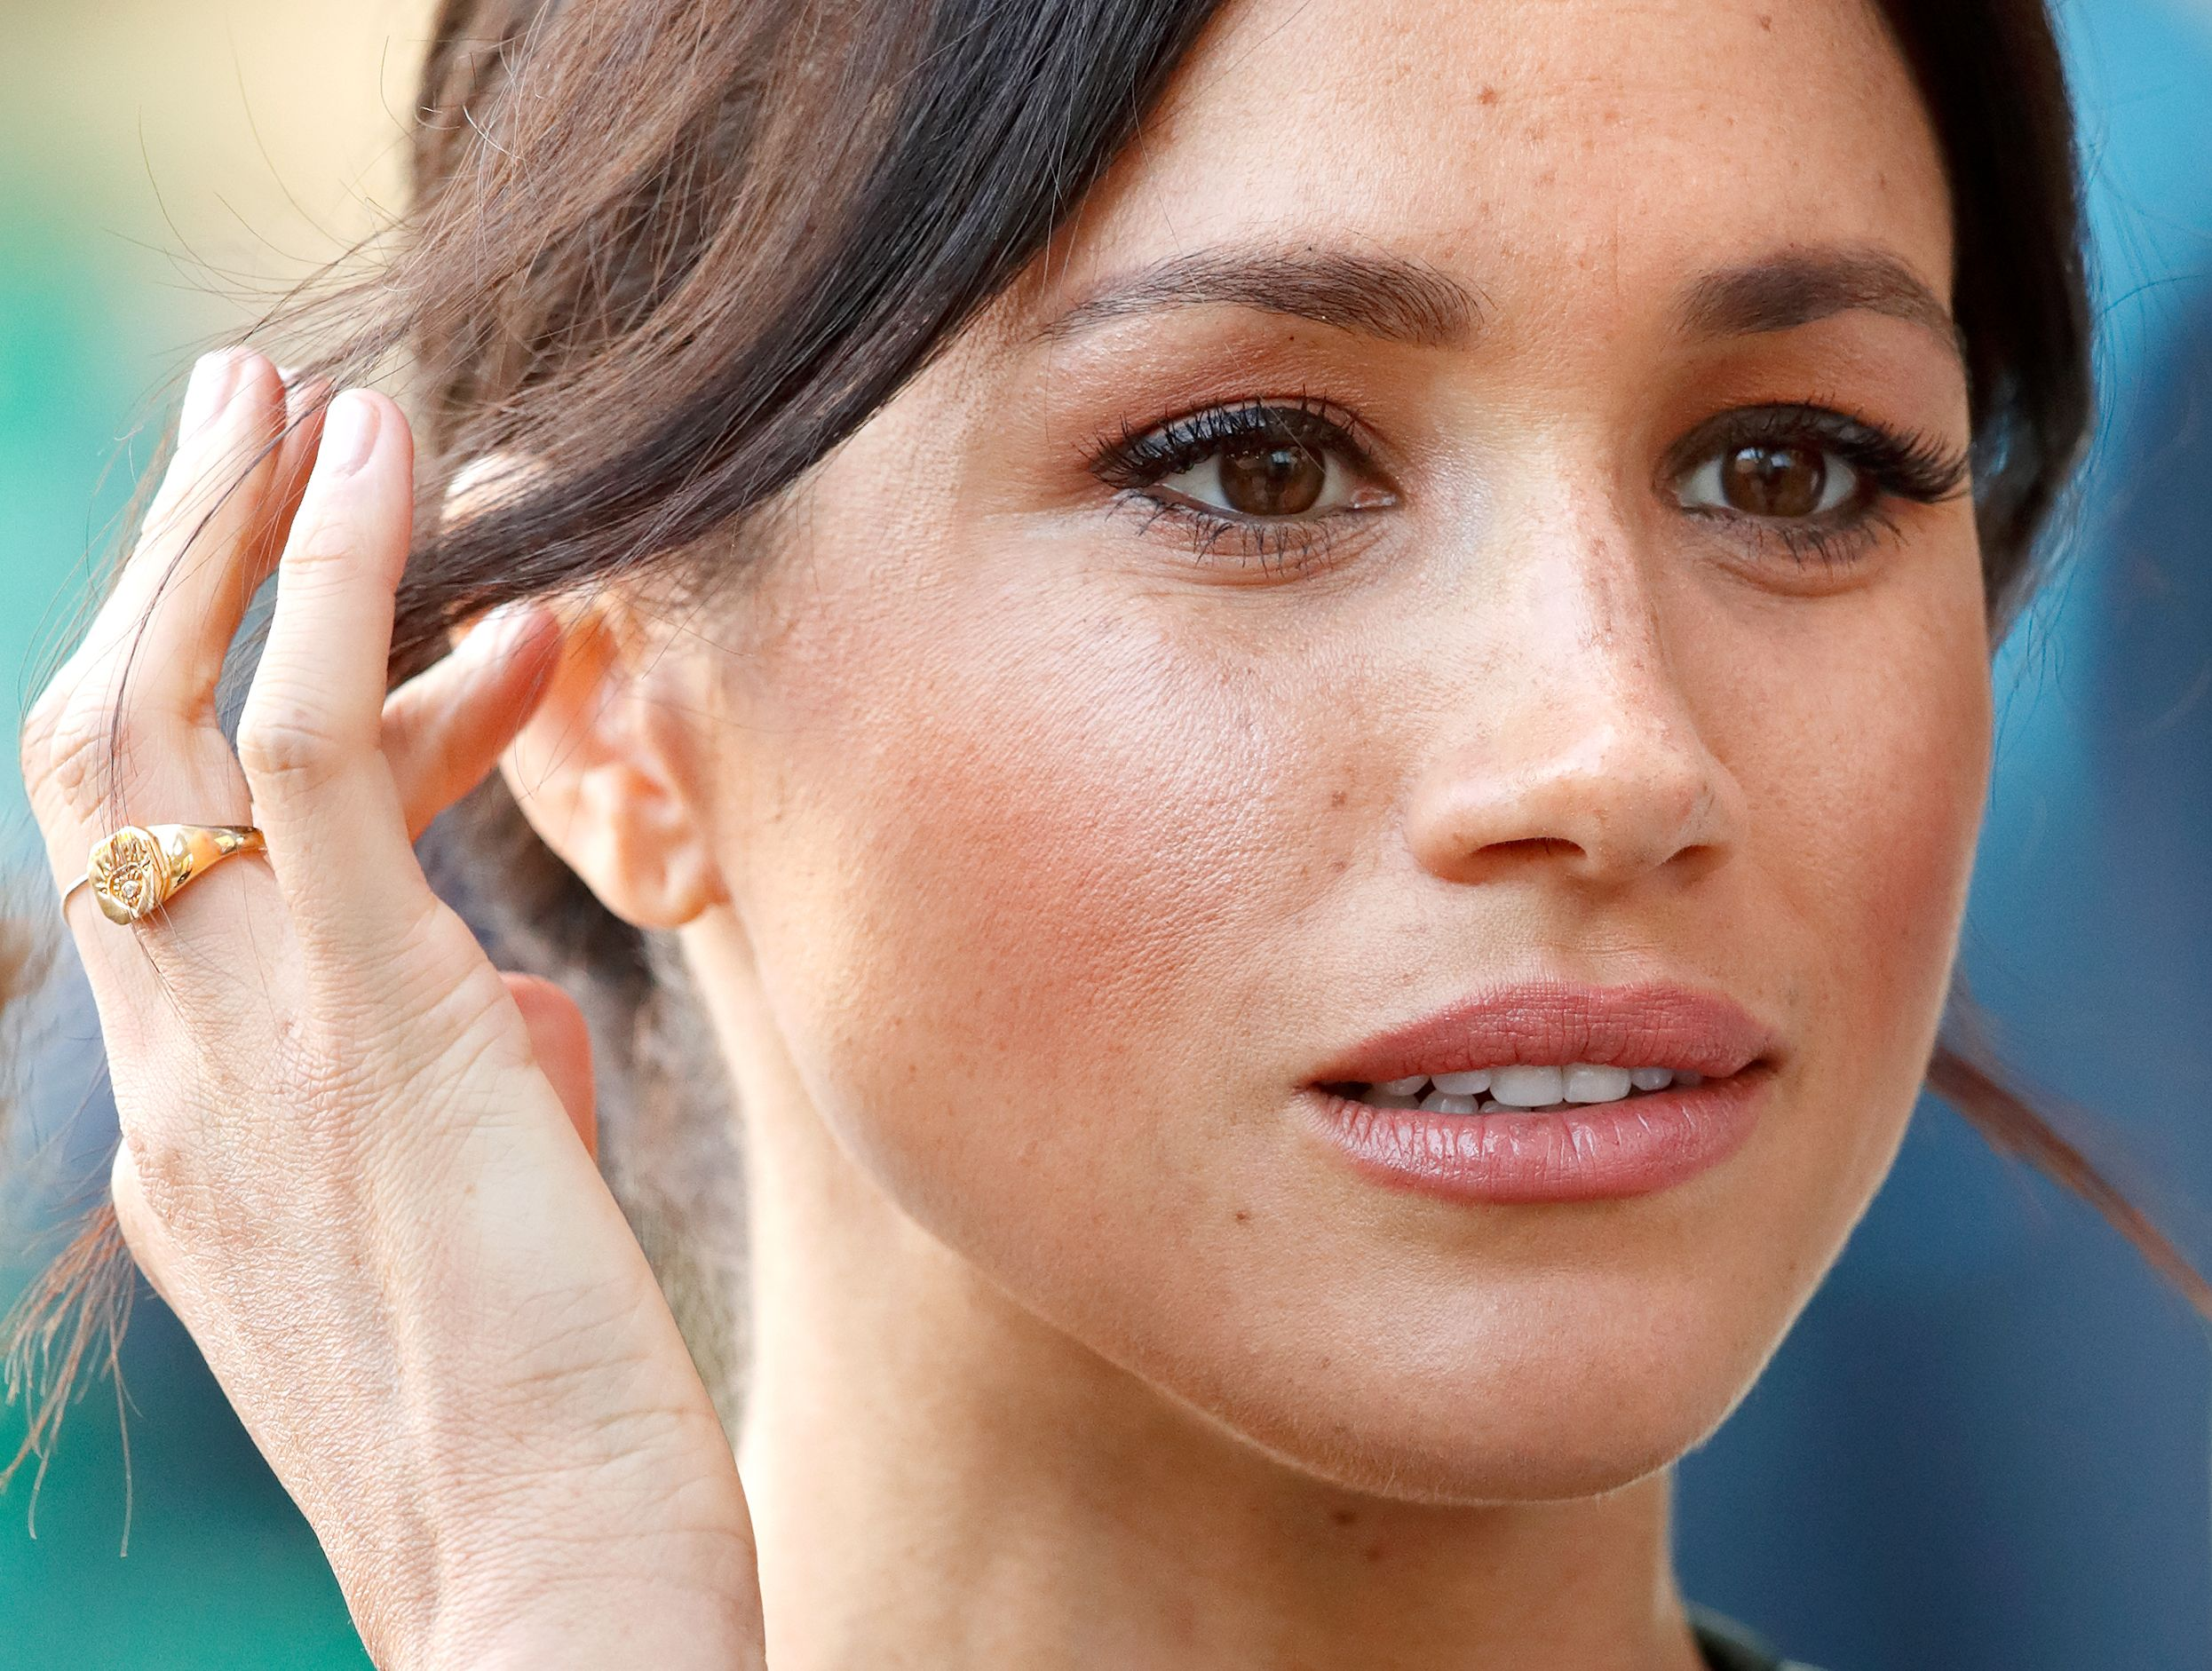 Meghan Markle Said Her British Friends Told Her Not to Marry Prince Harry Because the 'Tabloids Will Destroy Your Life'